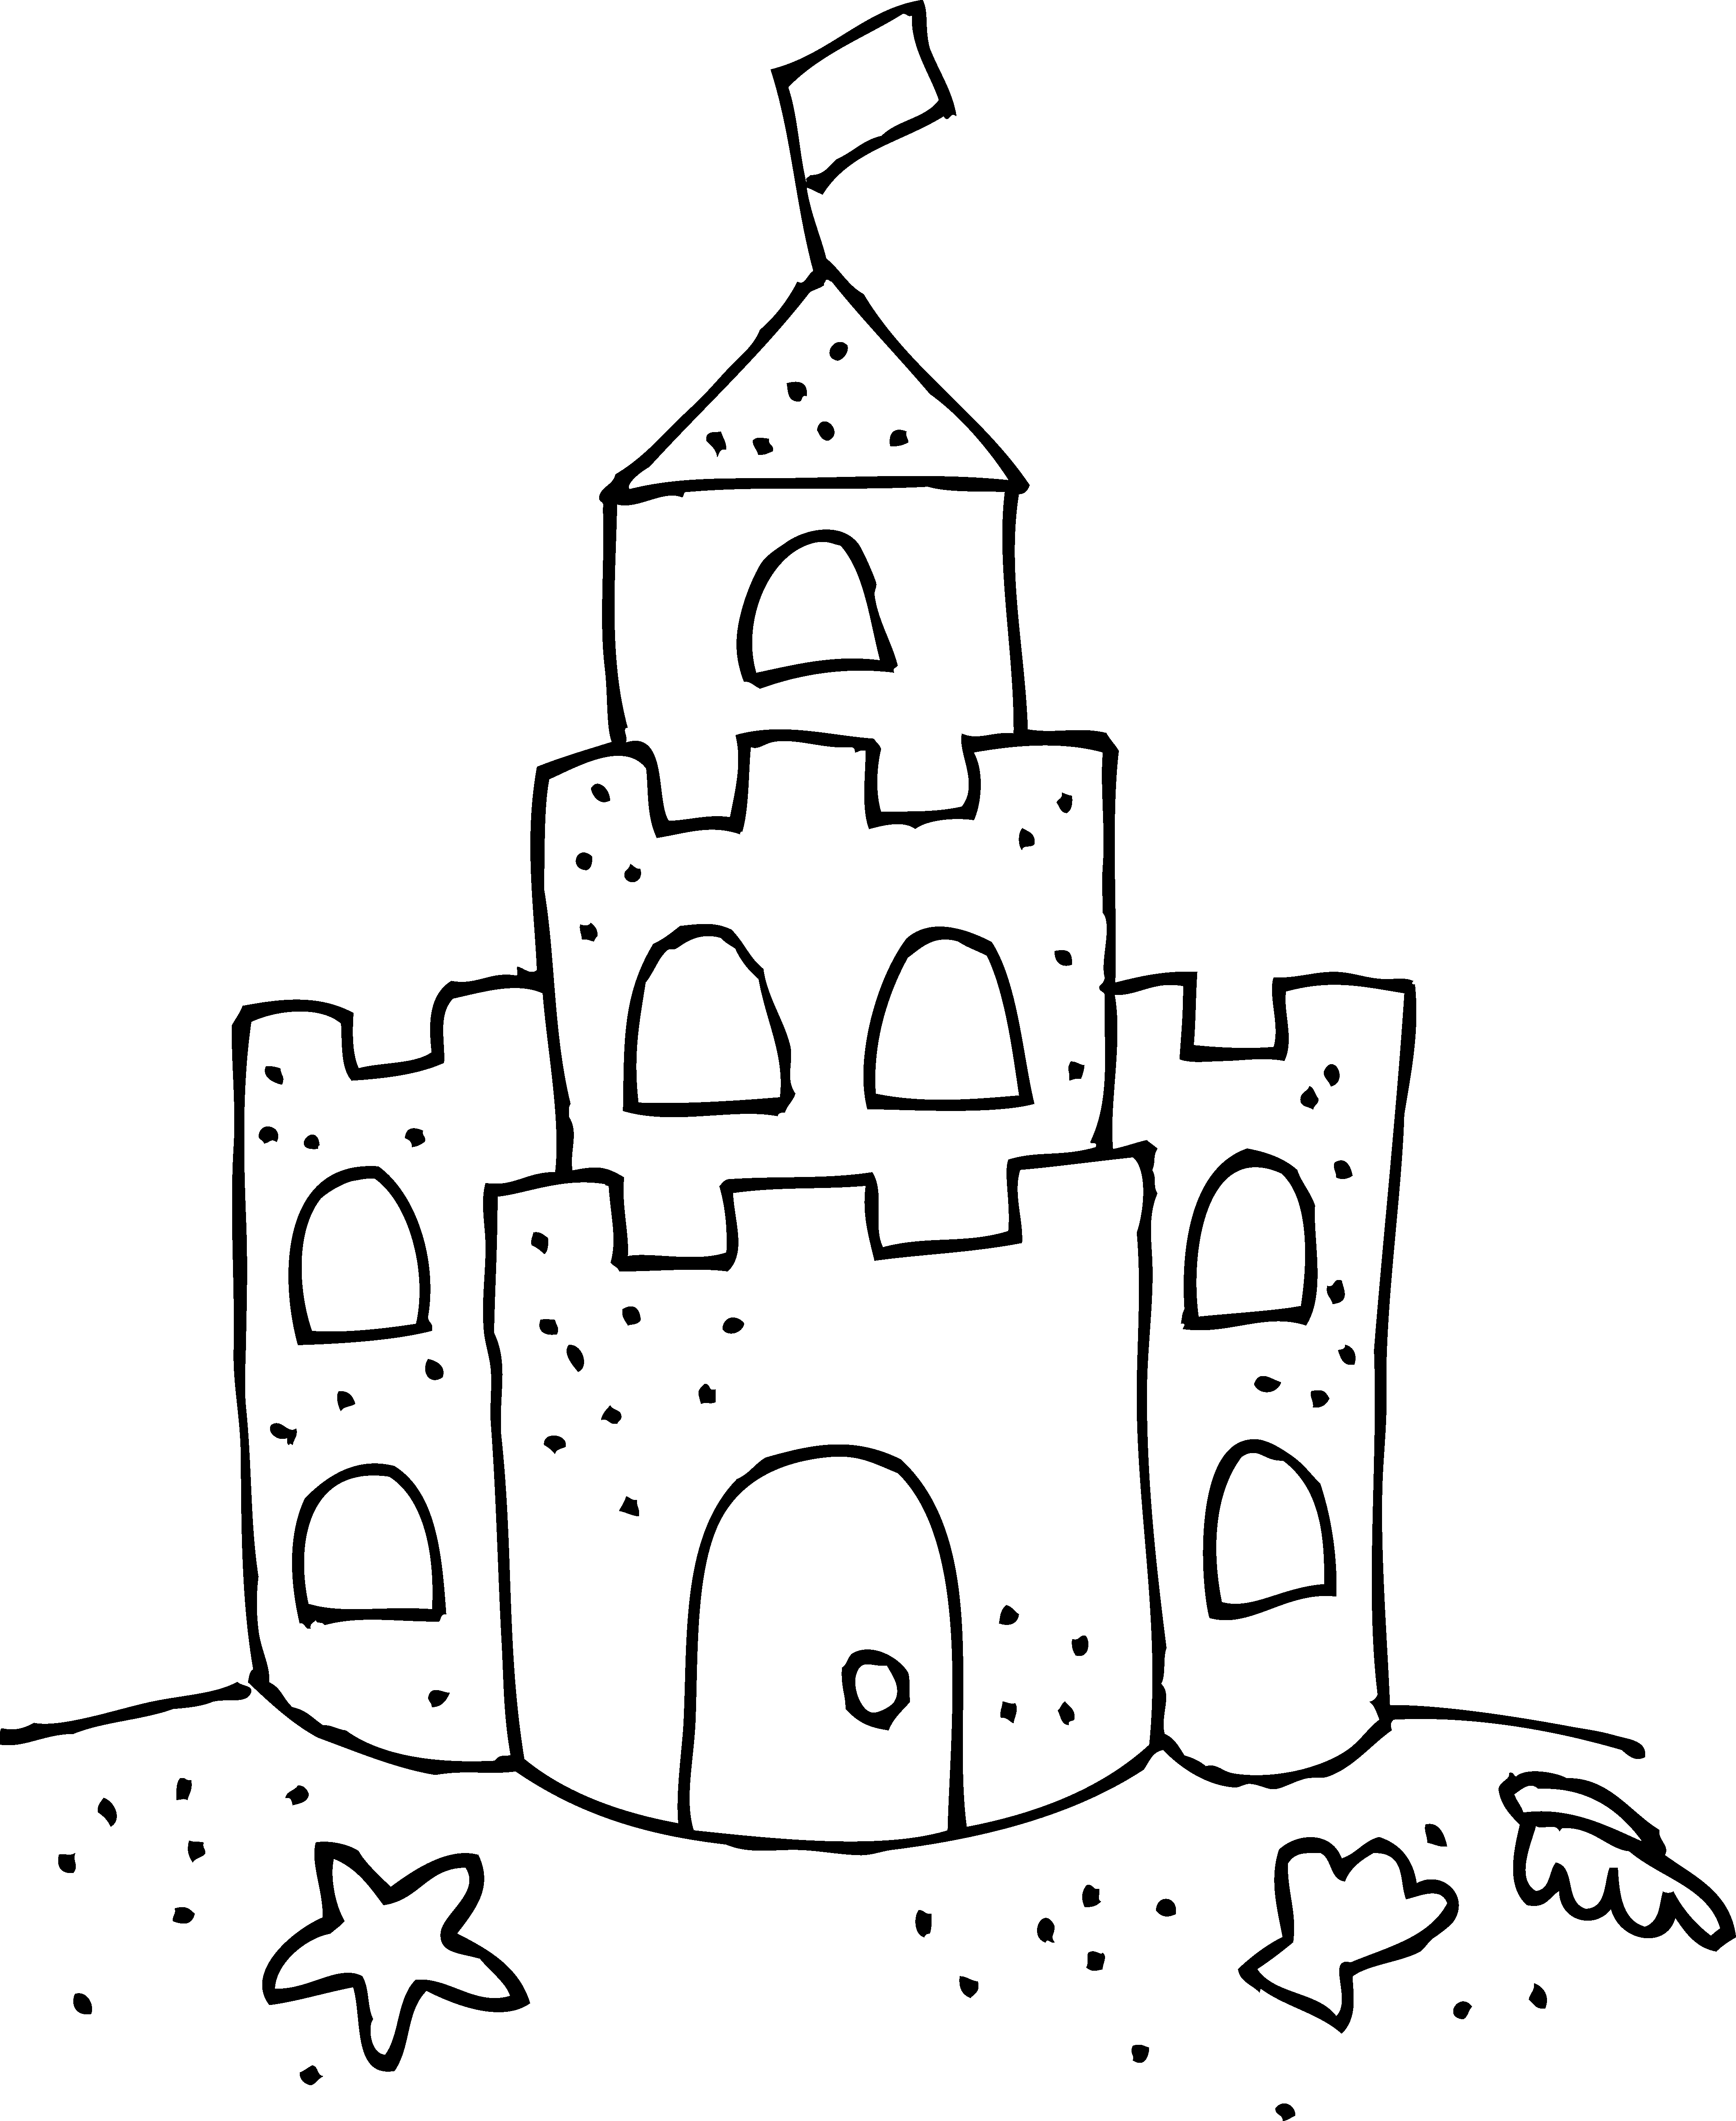 Printable Sand Castle Coloring Page In 2020 Castle Coloring Page Sand Castle Craft Sand Art Crafts